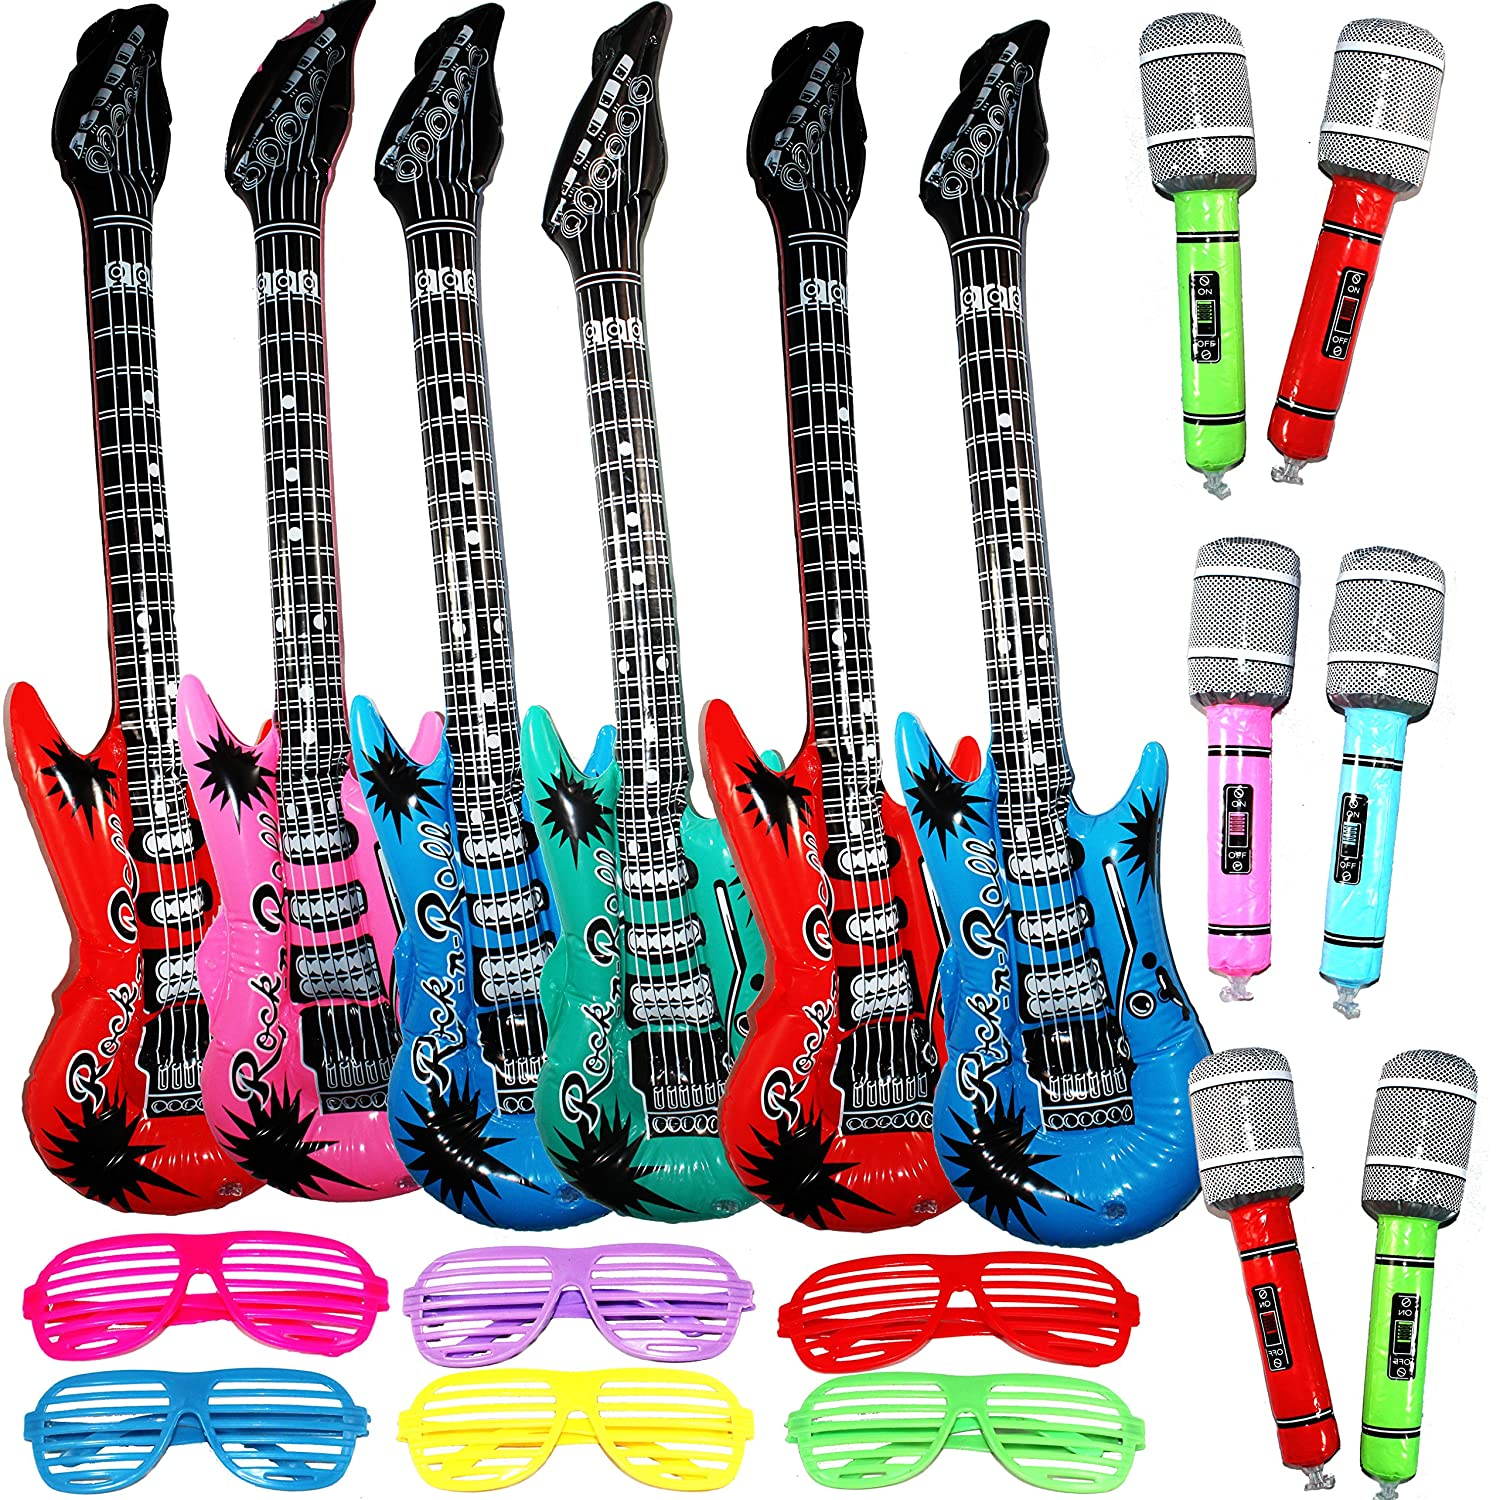 Joyin Toy Inflatable Rock Star Toy Set - 6 Electric Guitar (38 Inches), 6 Microphones and 6 Shutter Shading Glasses.